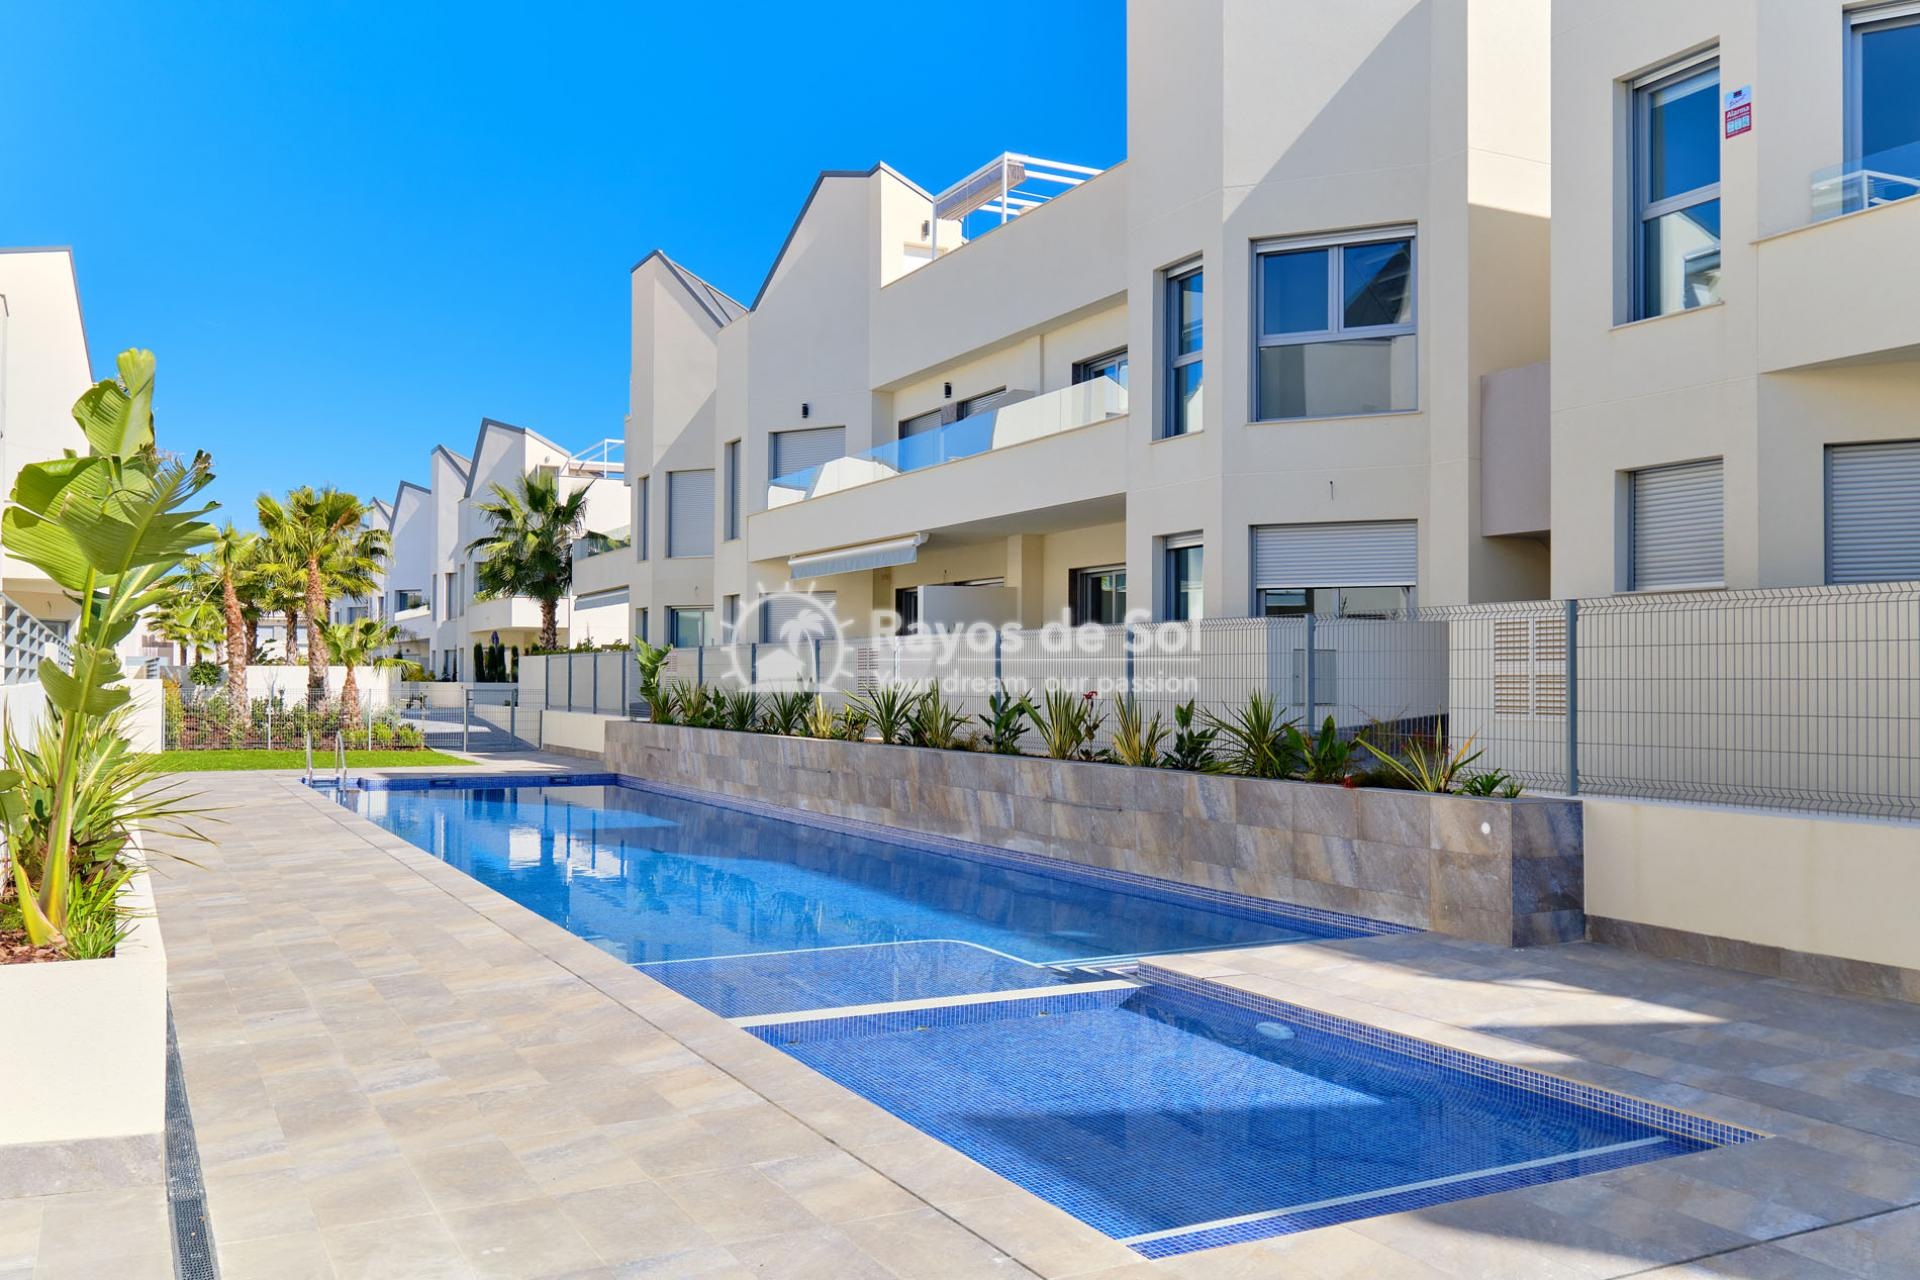 Townhouse  in Torrevieja, Costa Blanca (vamalia2-dpx) - 1